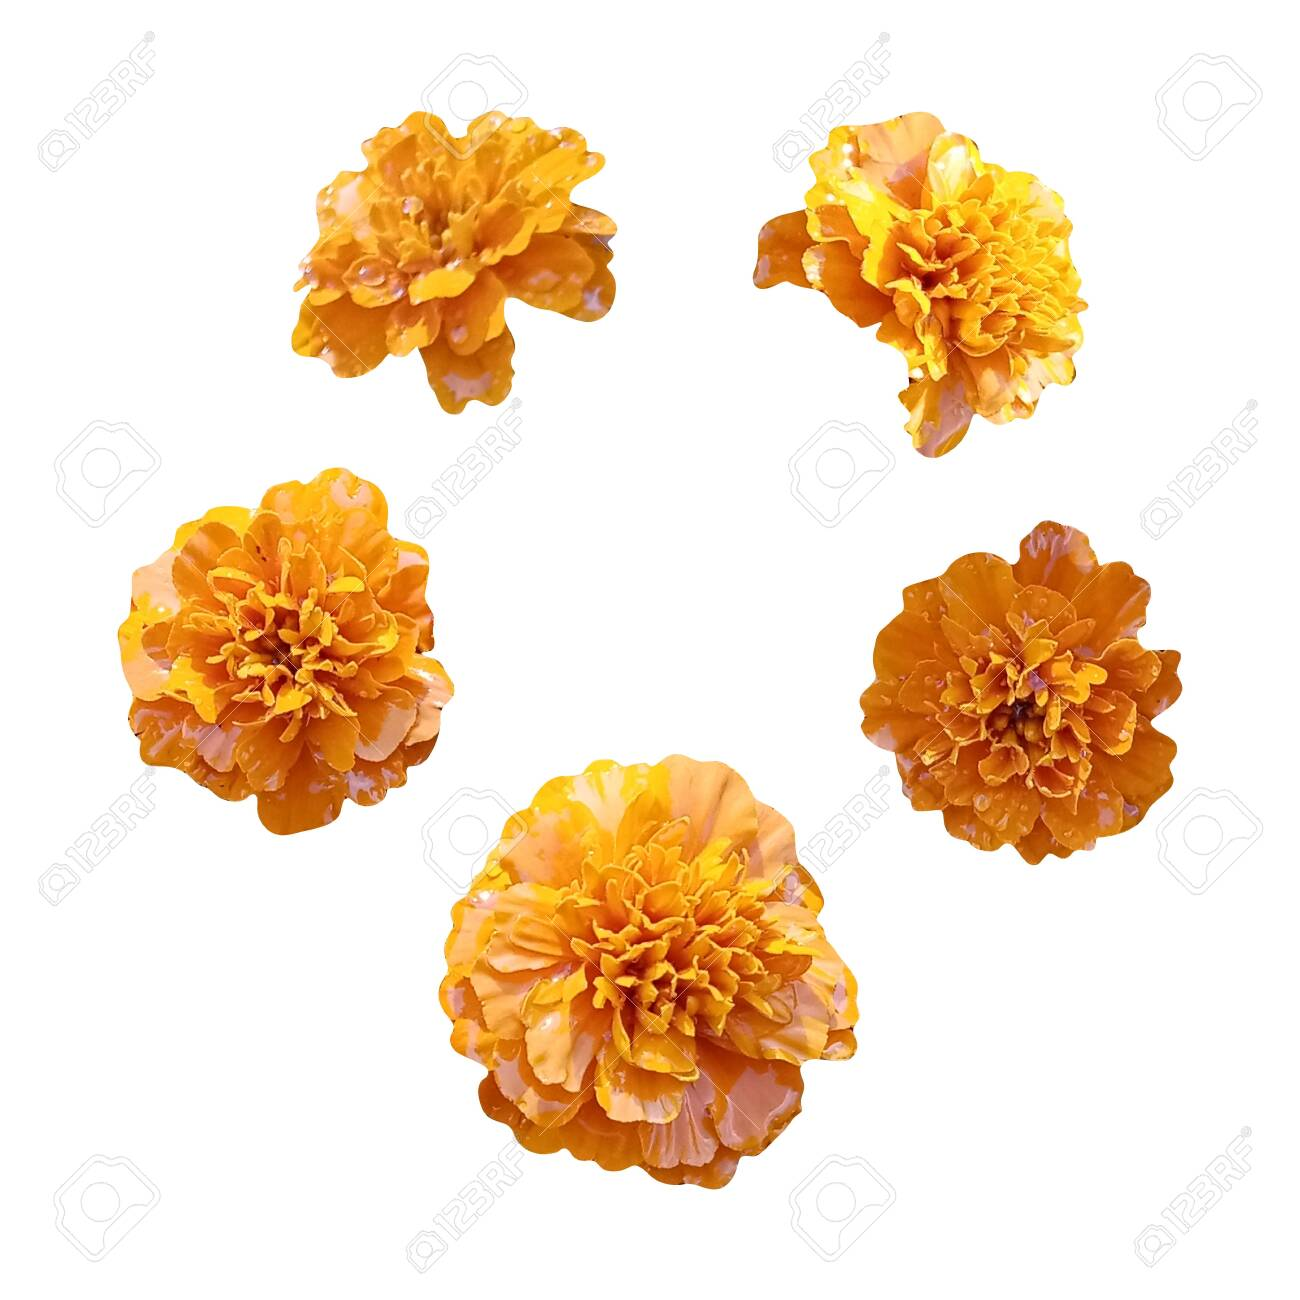 Marigold orange flowers isolated on white background. Image for your decor and design. The day of the Dead. Mexico. - 135528382